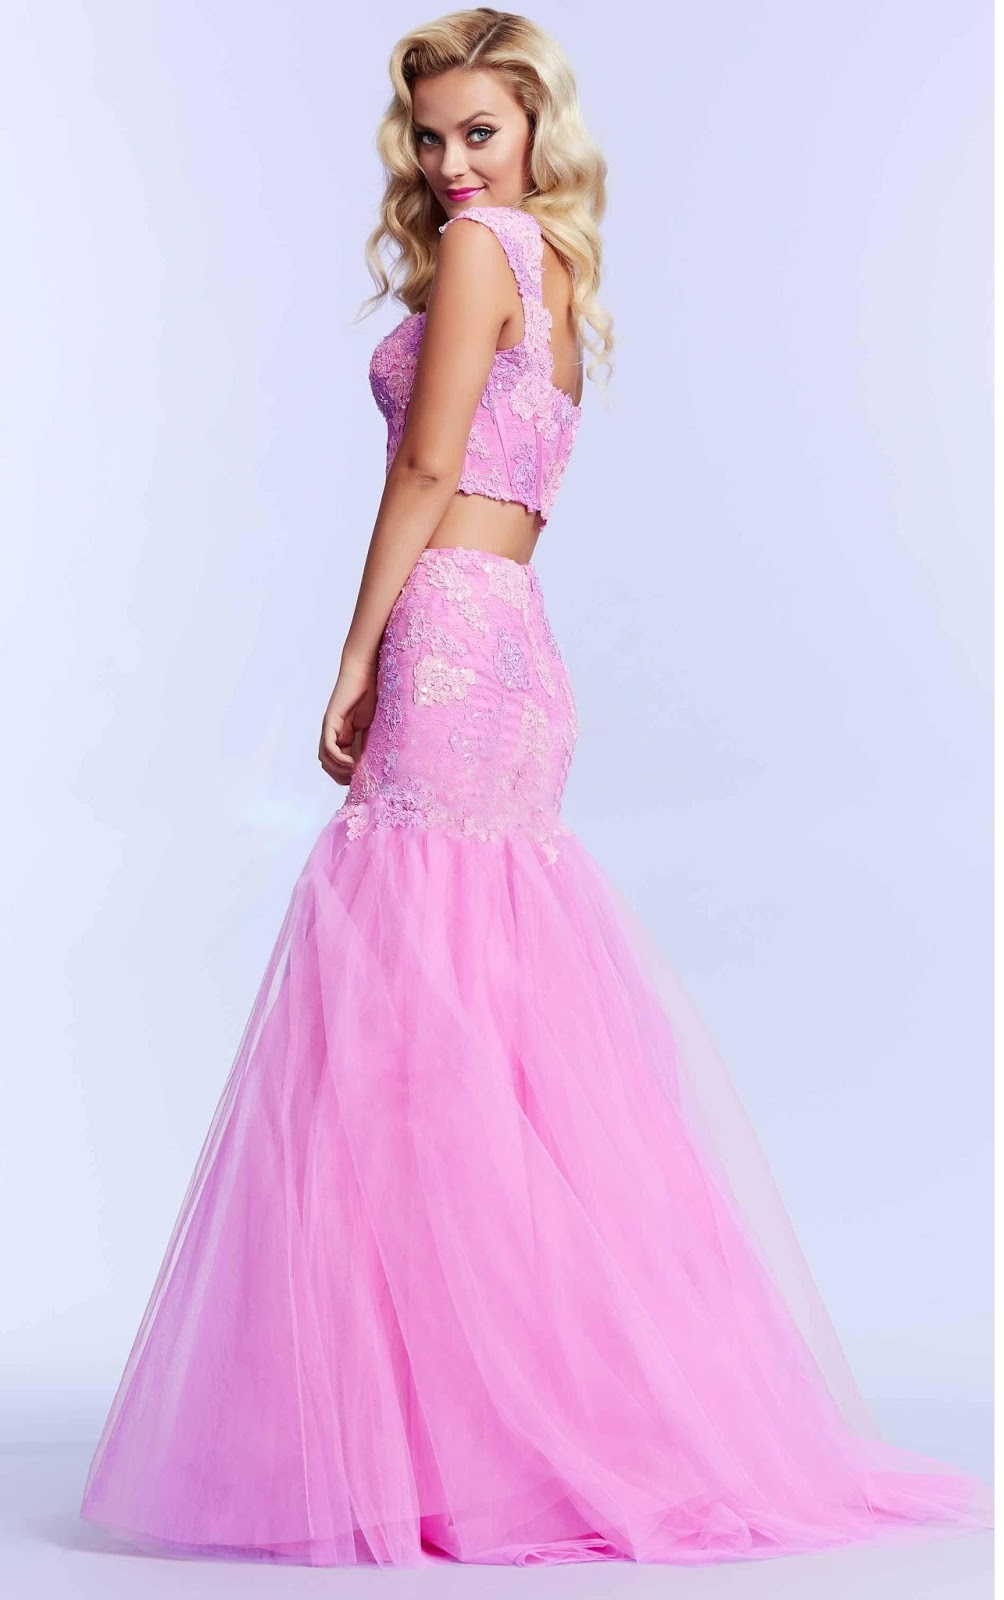 http://www.sherrylondon.co.uk/two-piece-trumpetmermaid-shoulder-straps-natural-waist-tulle-long-prom-dress-p-2111.html